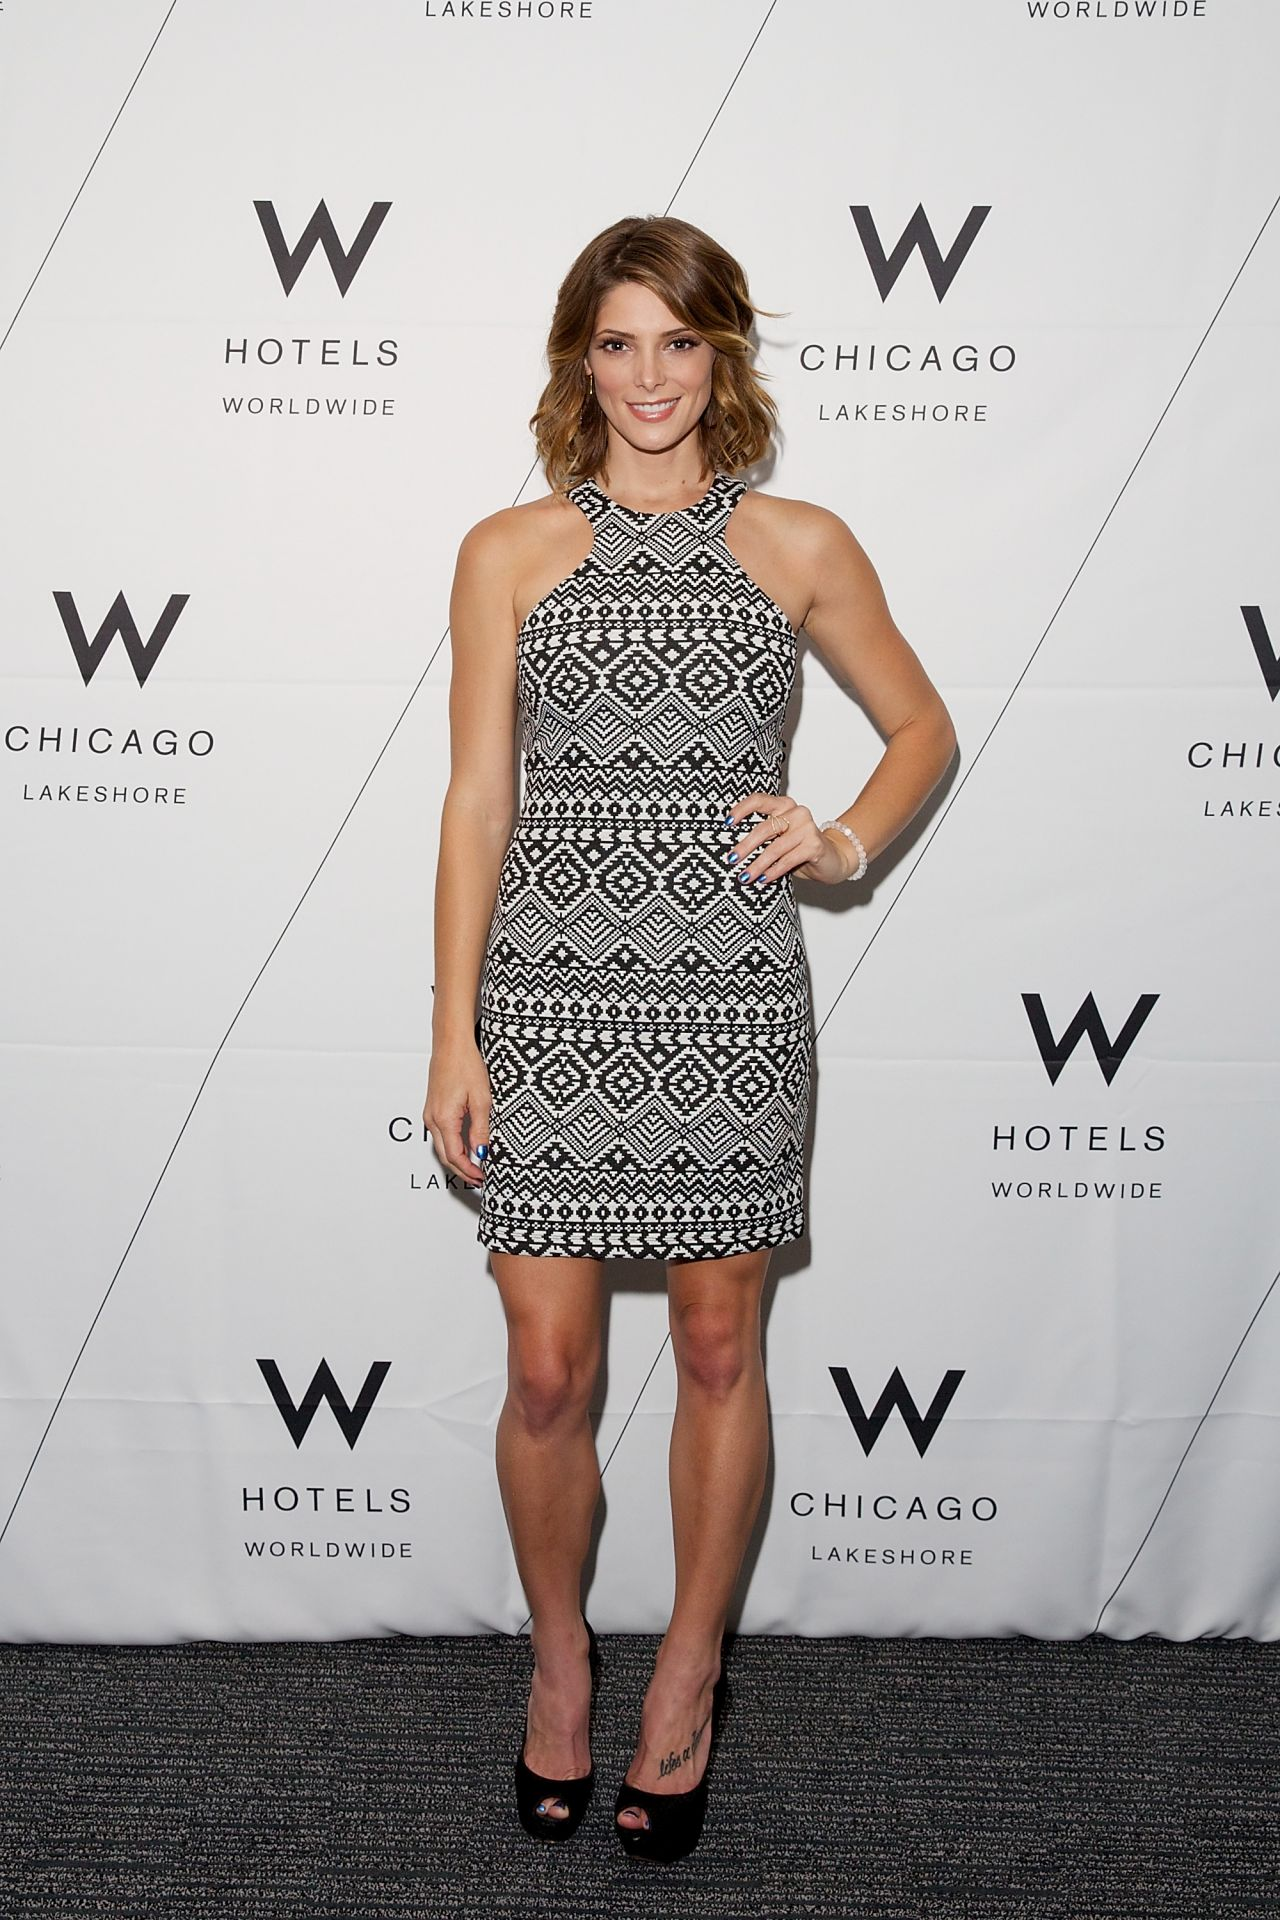 Ashley Greene - W Hotels of Chicago Lakeshore Reveal Party, July 2014